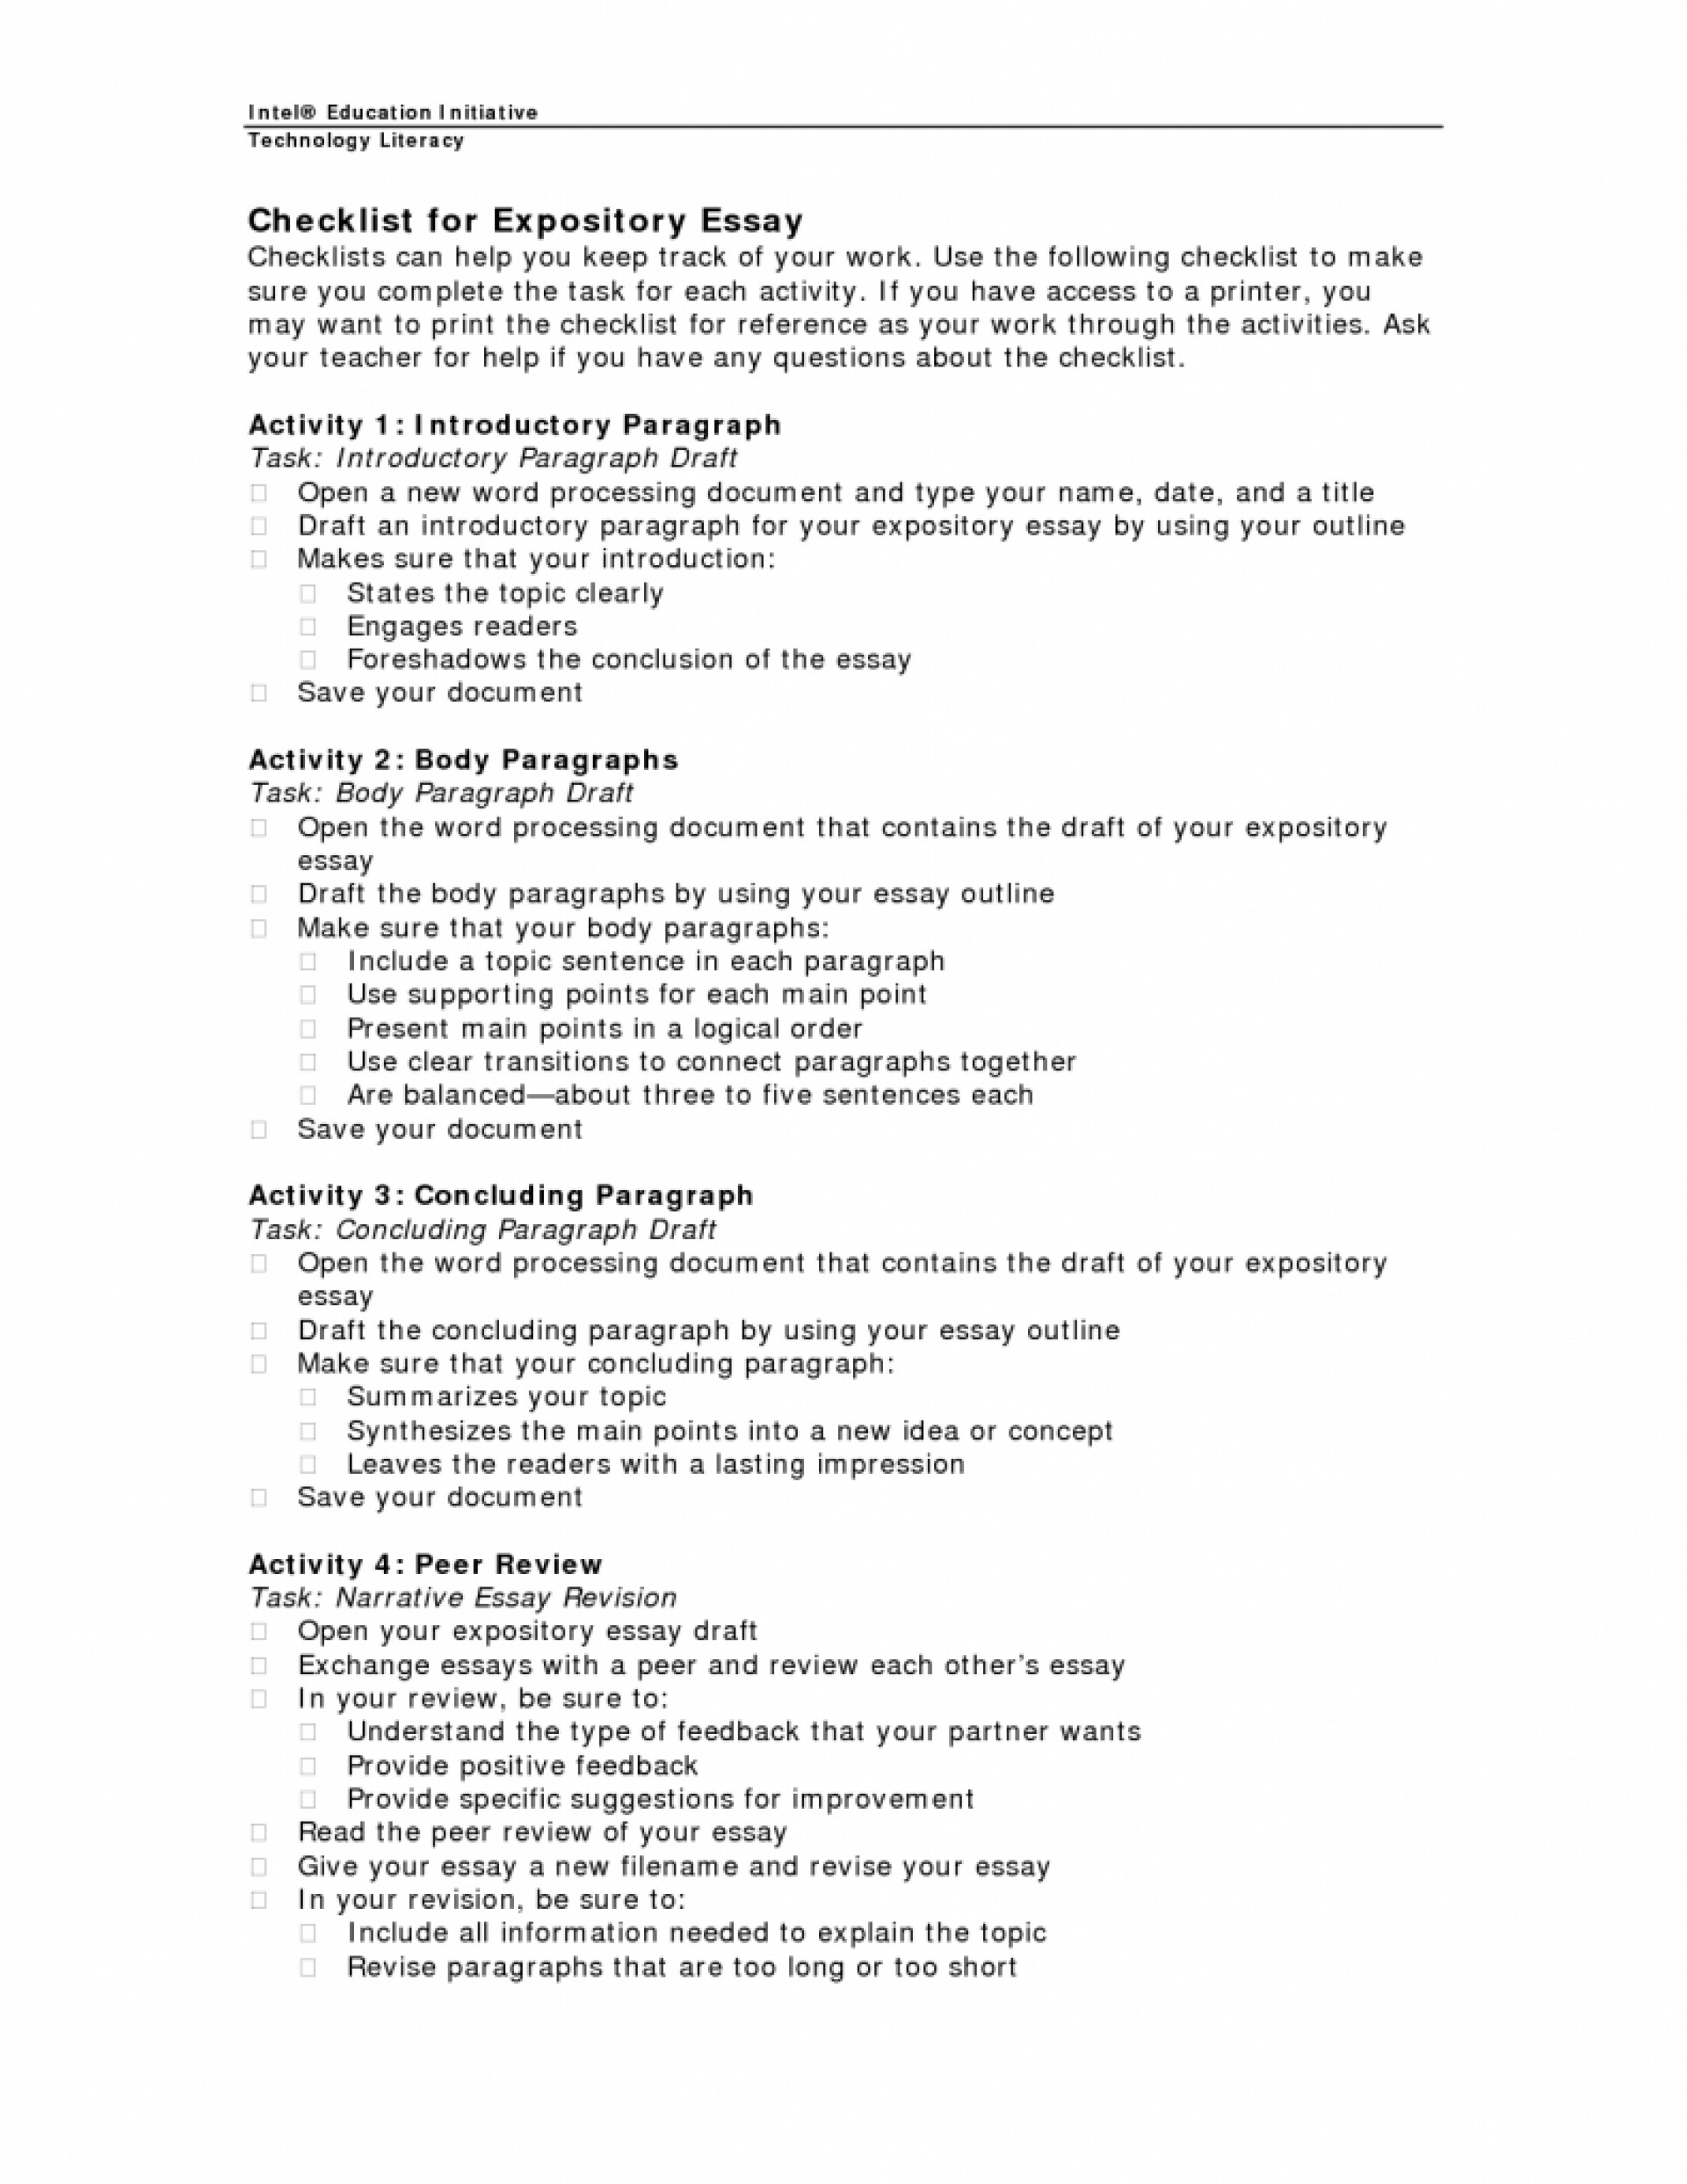 023 Expository Essay Checklist 791x1024 What Is An Magnificent Gcu Middle School Powerpoint 1920